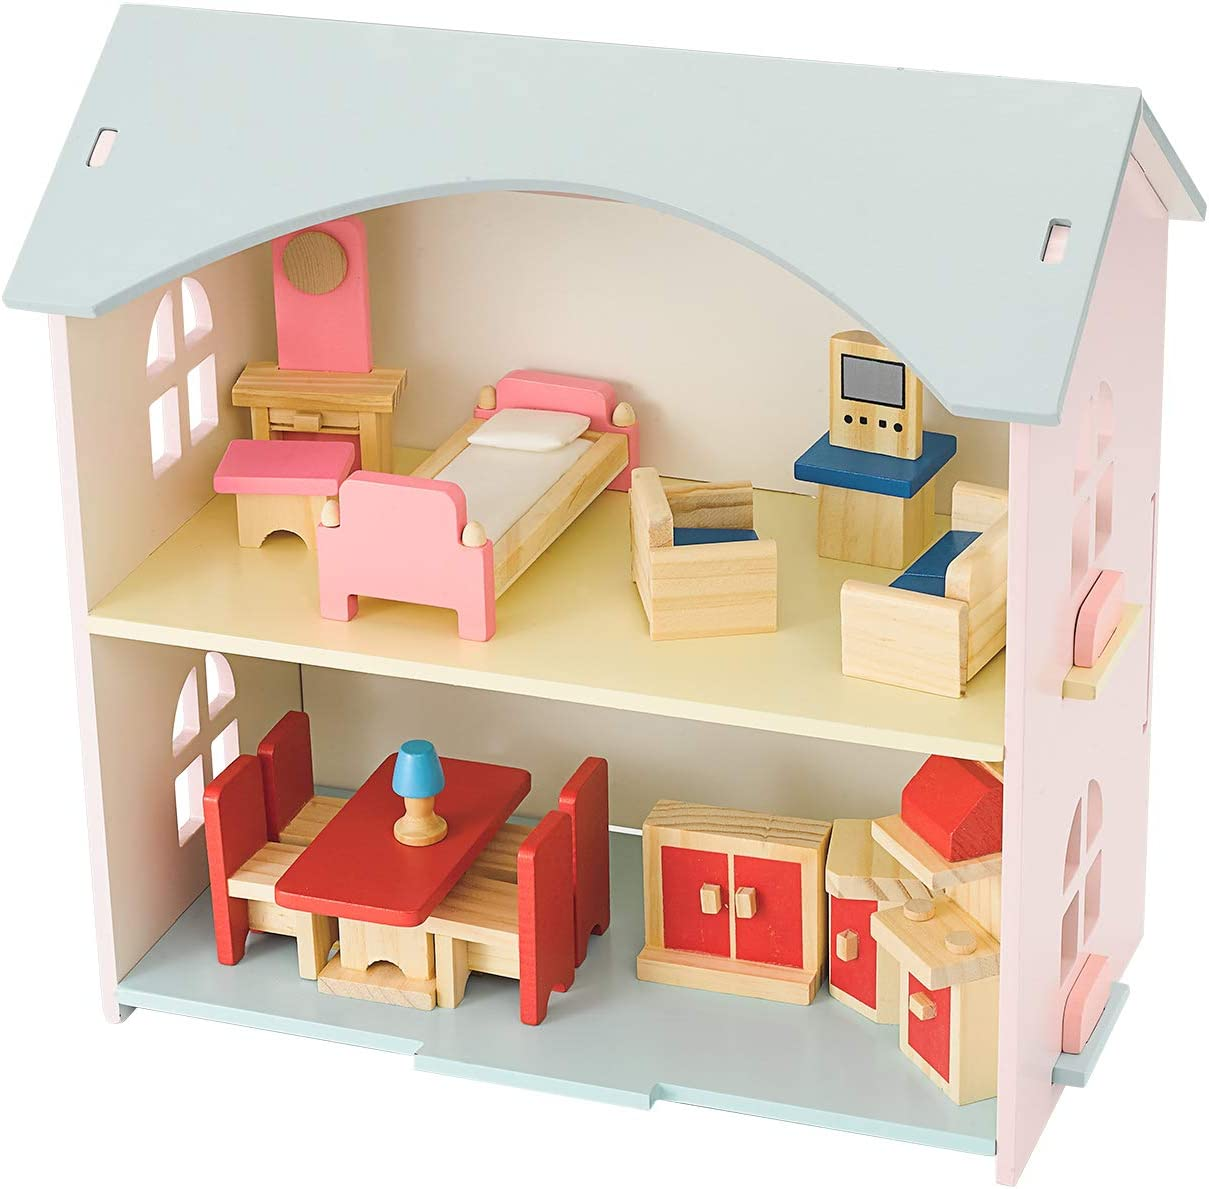 NextX Wooden Dollhouse Set with Furniture, Pretend Play Toys for Girls, Miniature Wooden Toys for Kids, Doll House Educational Learning Toys for Boys and Girls